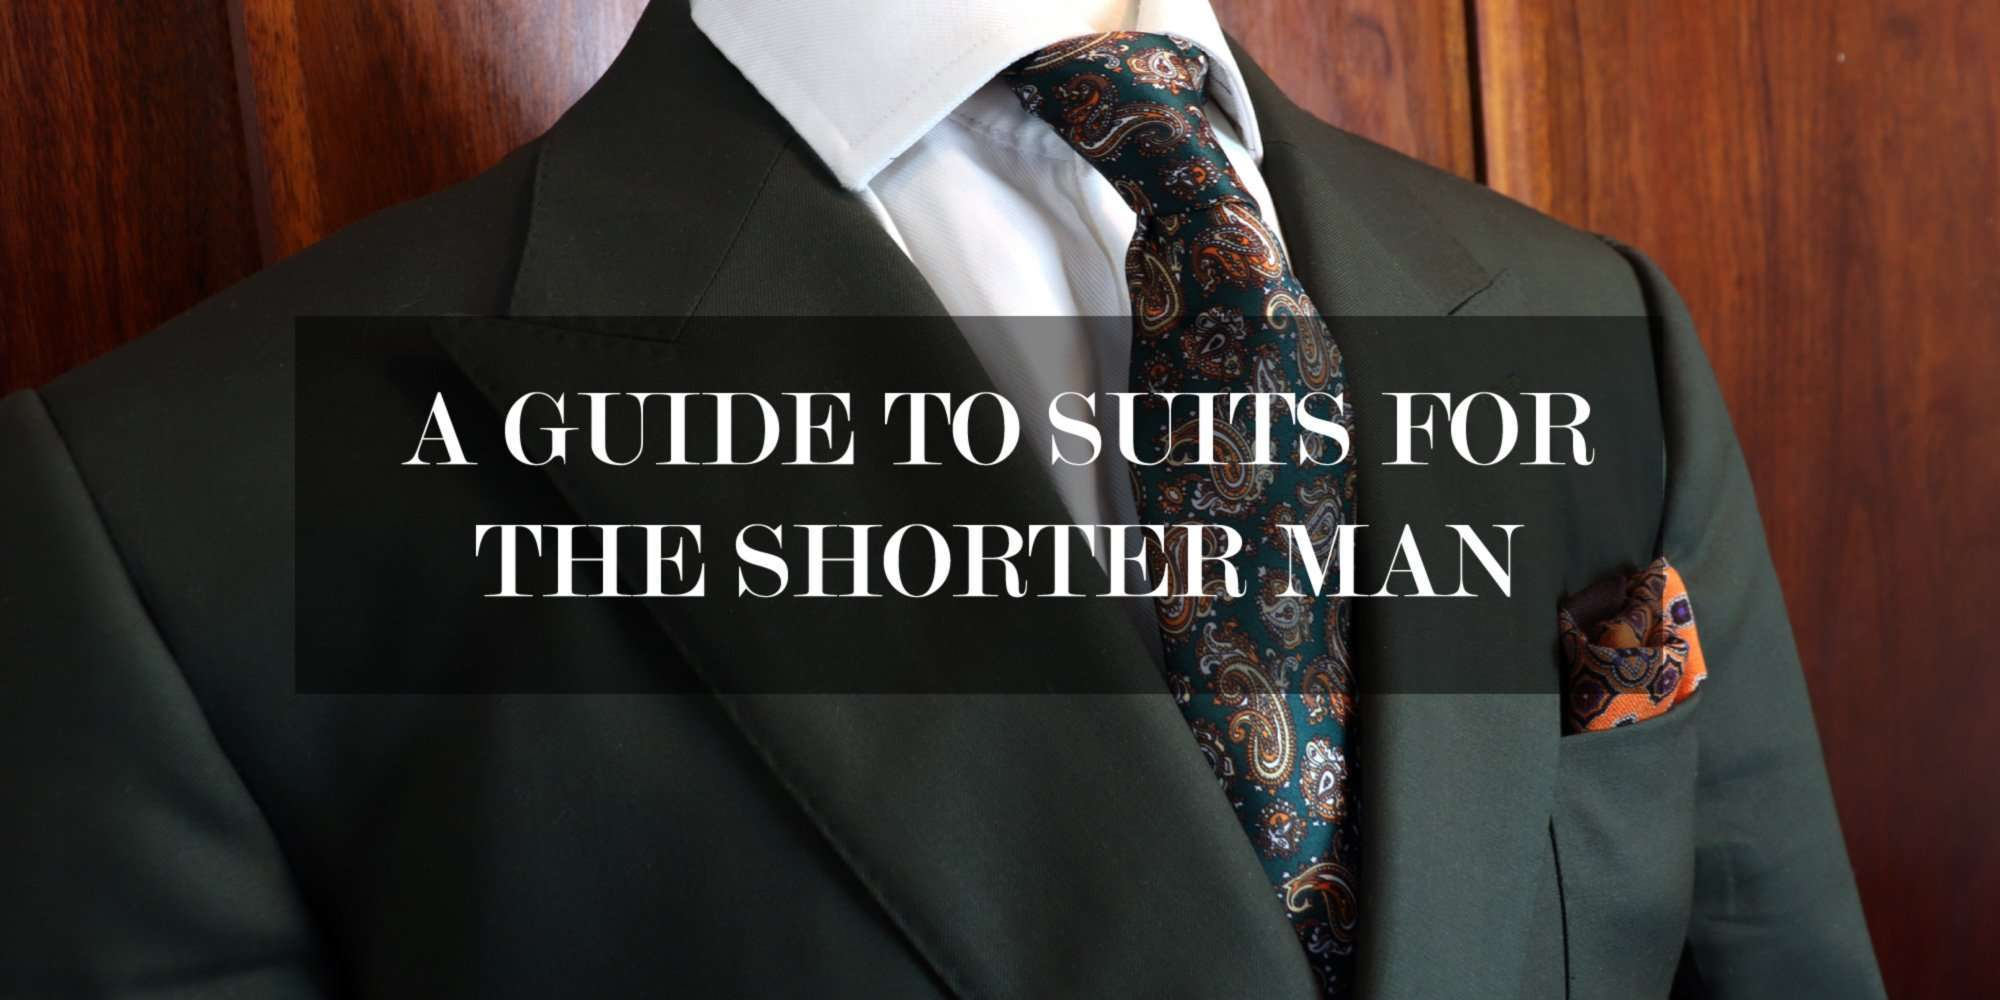 a-GUIDE-TO-SUITS-FOR-THE-SHORTER-MAN